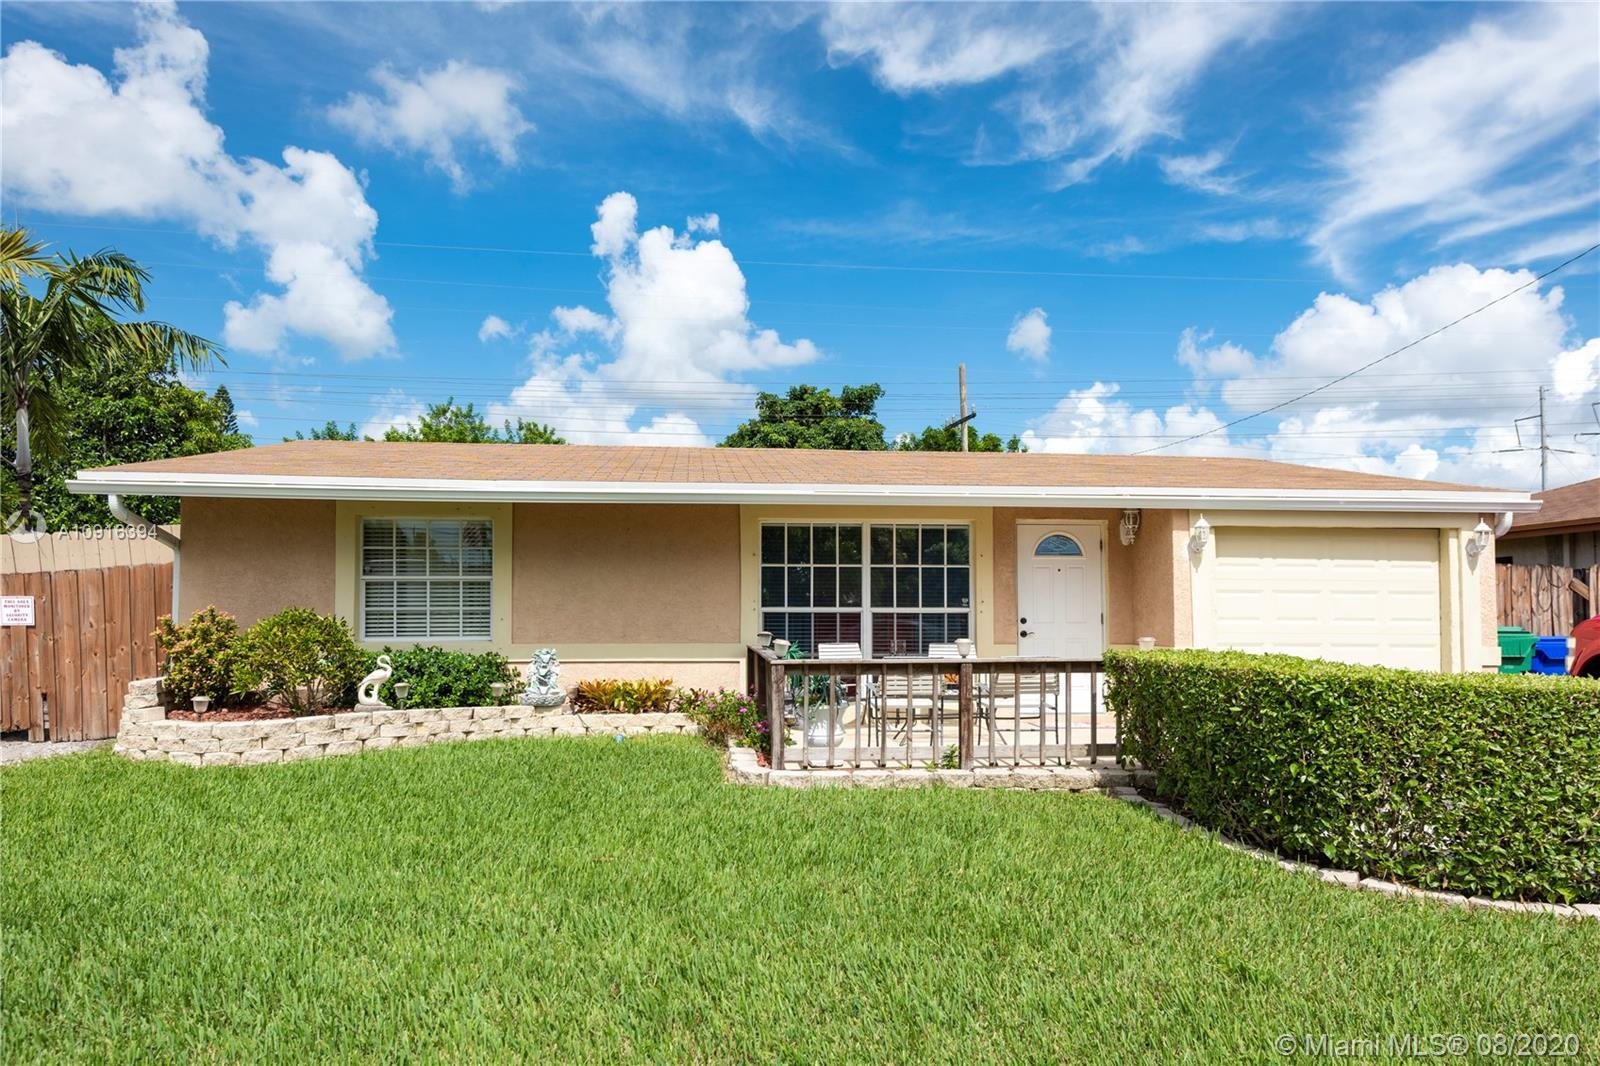 Bright and sunny with lots of new upgrades this 2BR/1BA with 1 car garage will not last long. Locate